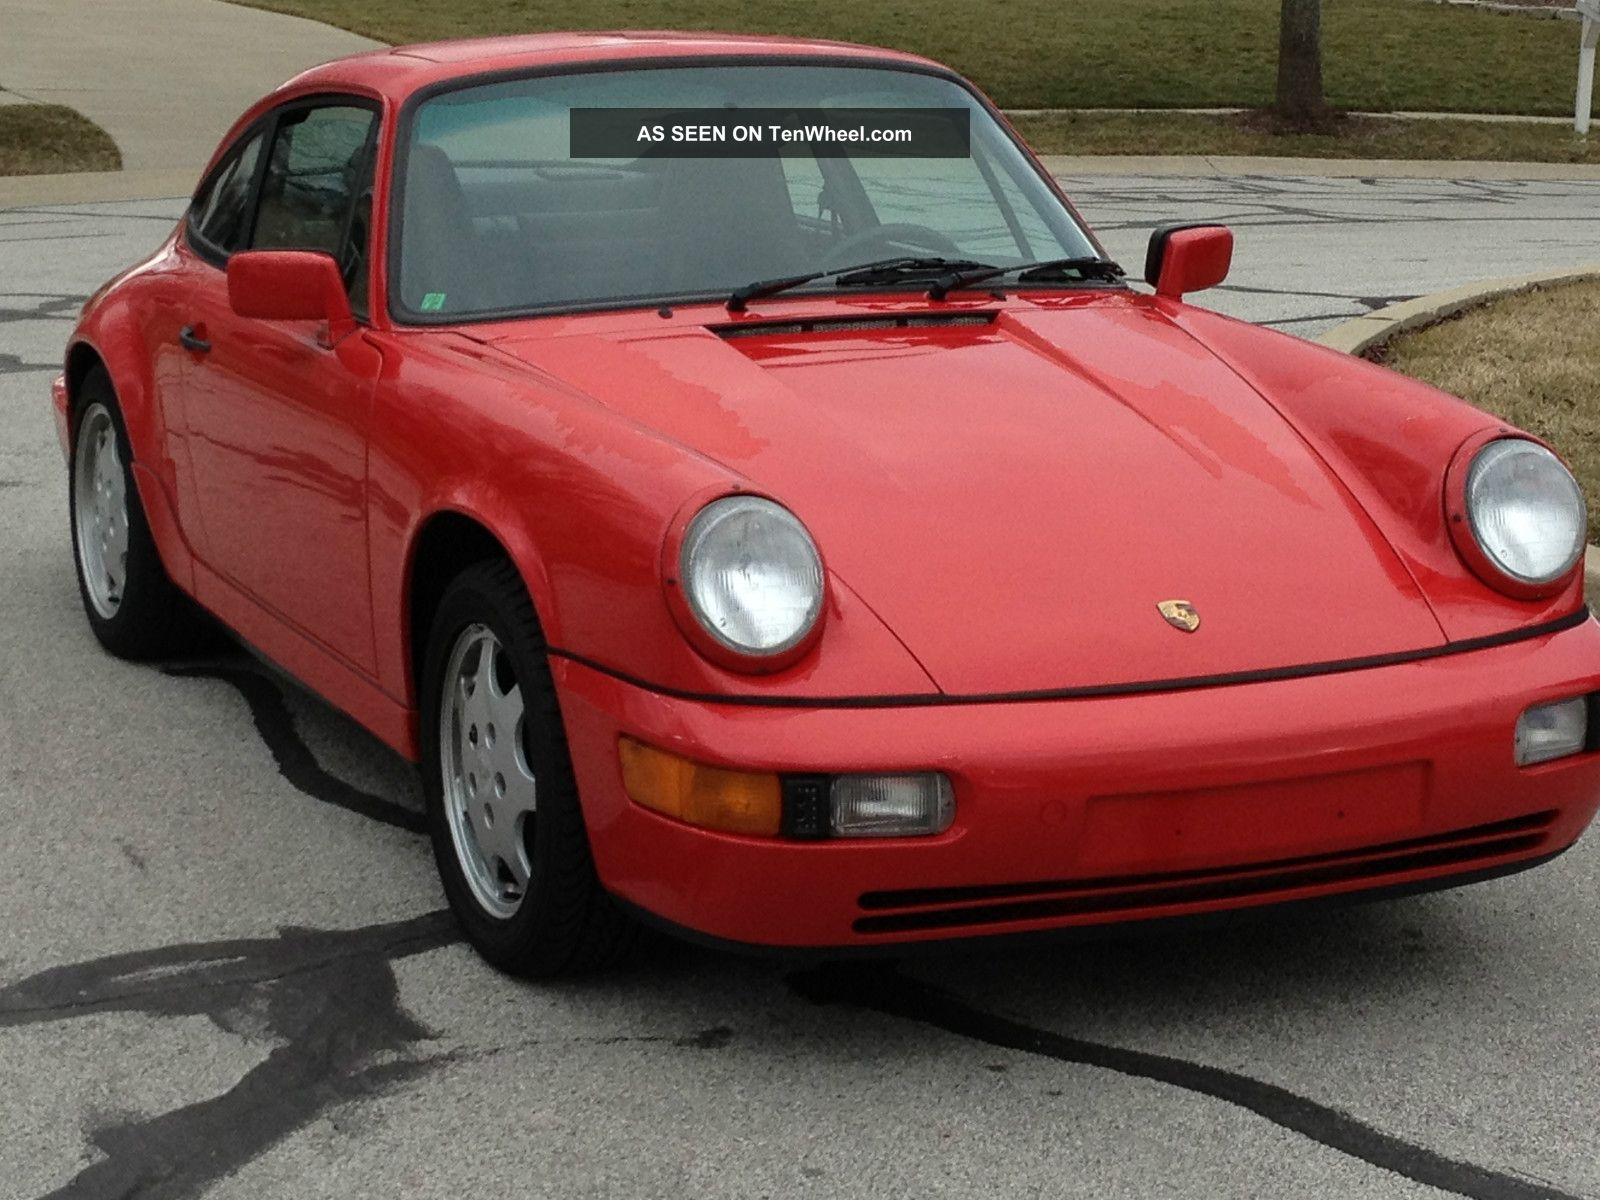 1989 Porche Carrera 4 911 photo